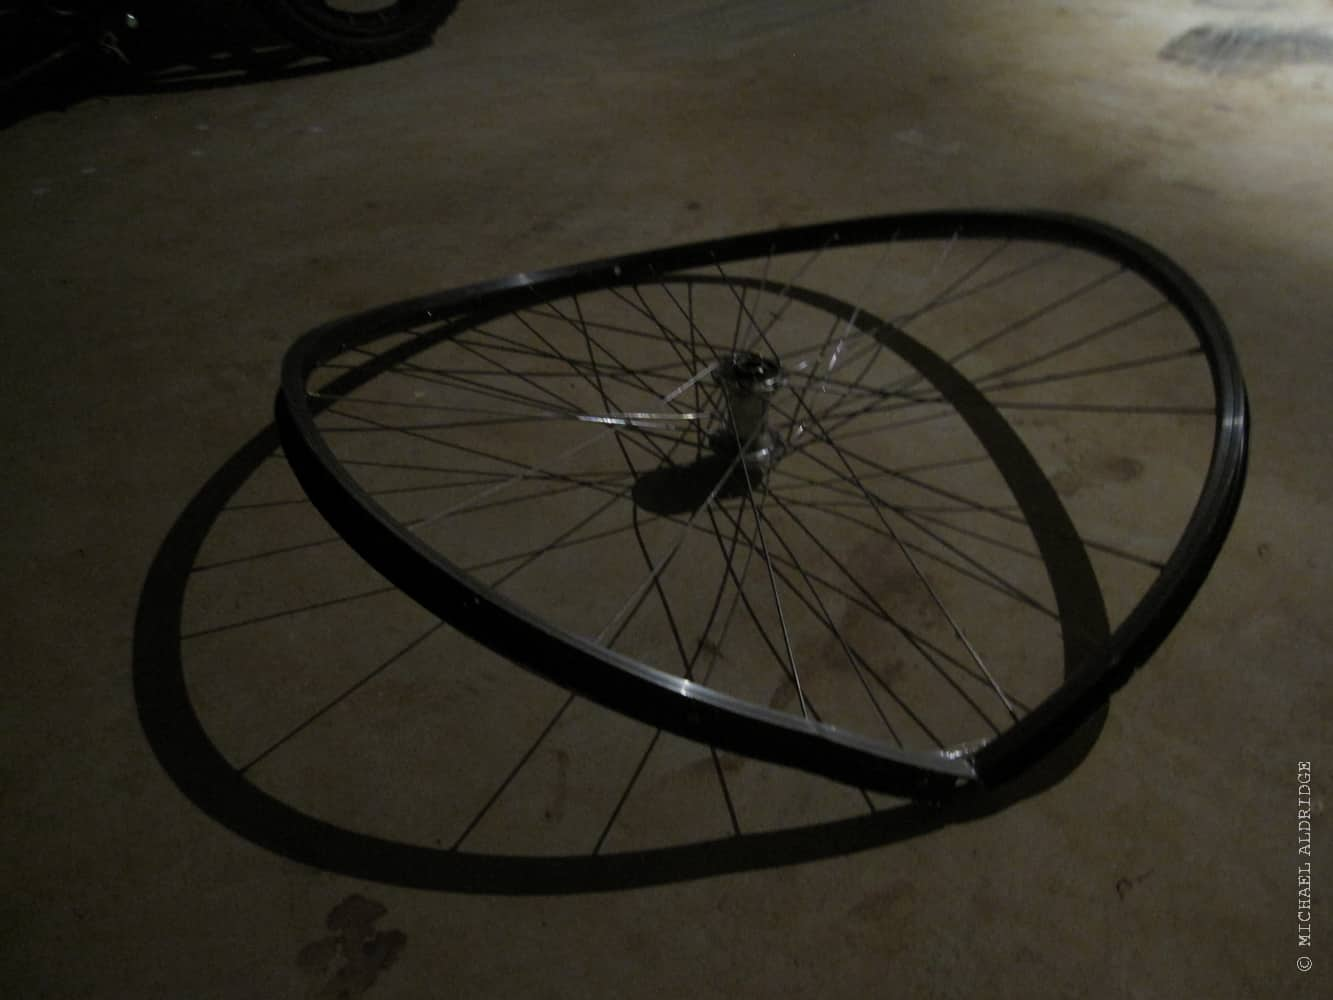 Broken Wheel on the bike